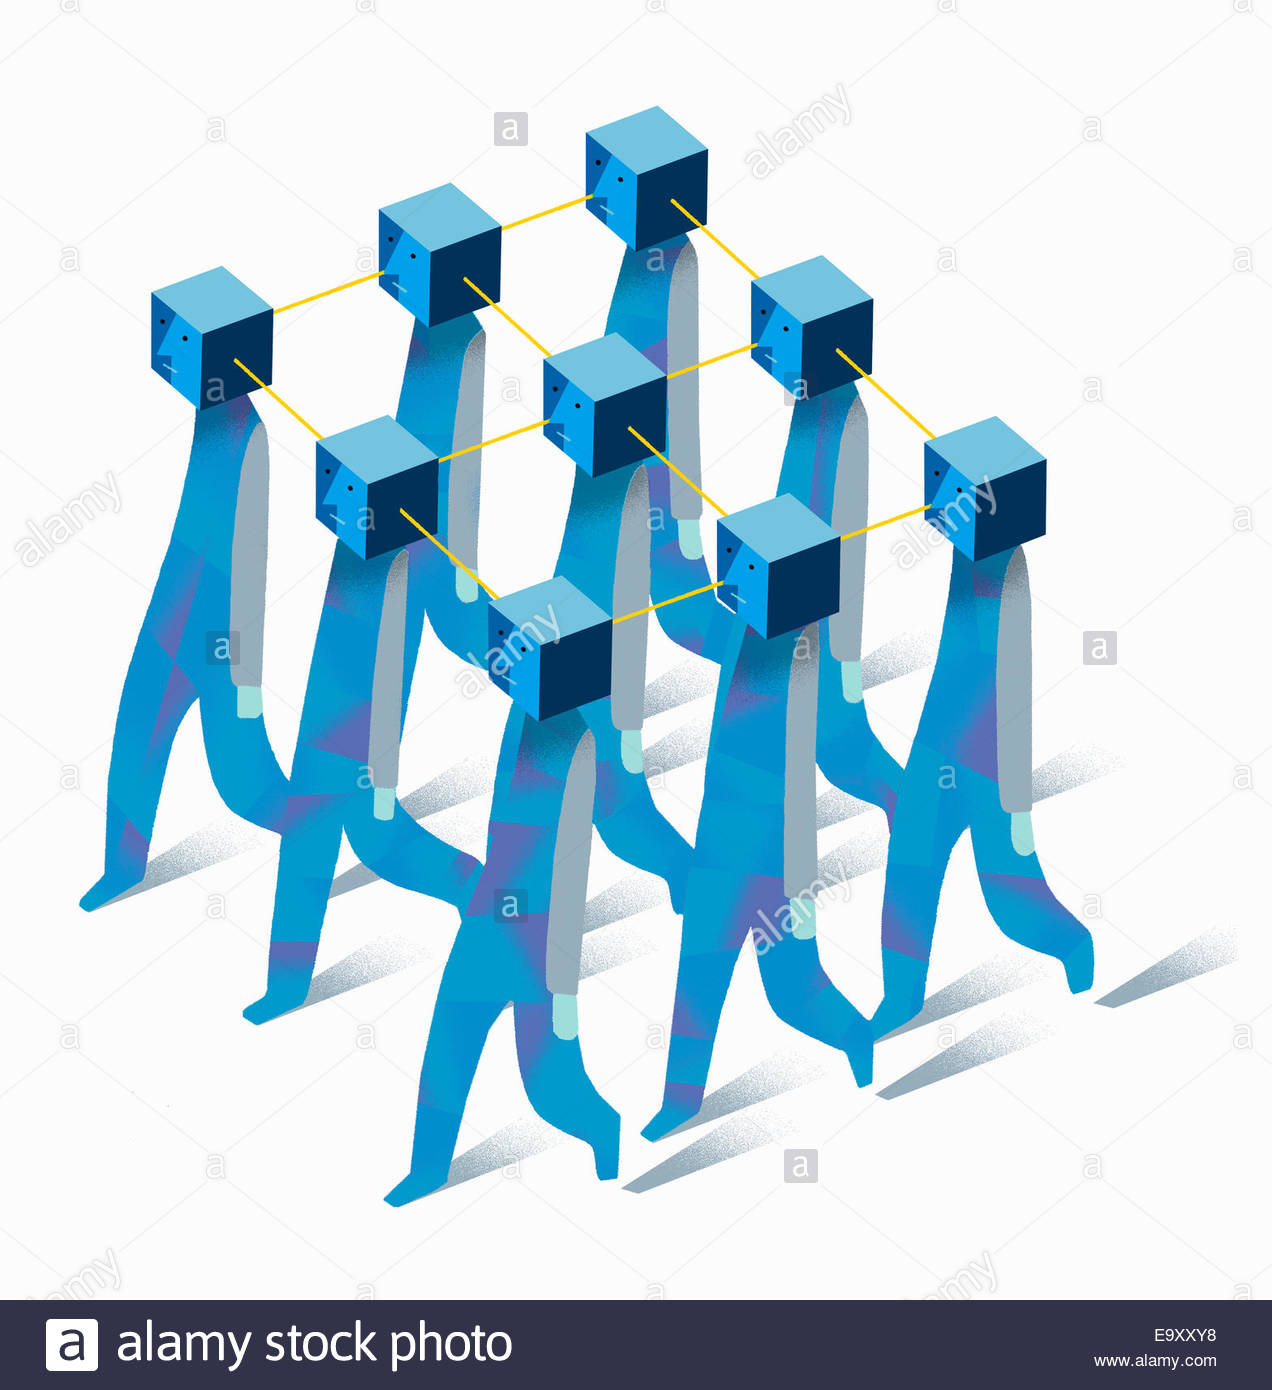 Unhappy connected identical men marching in formation - Stock Image